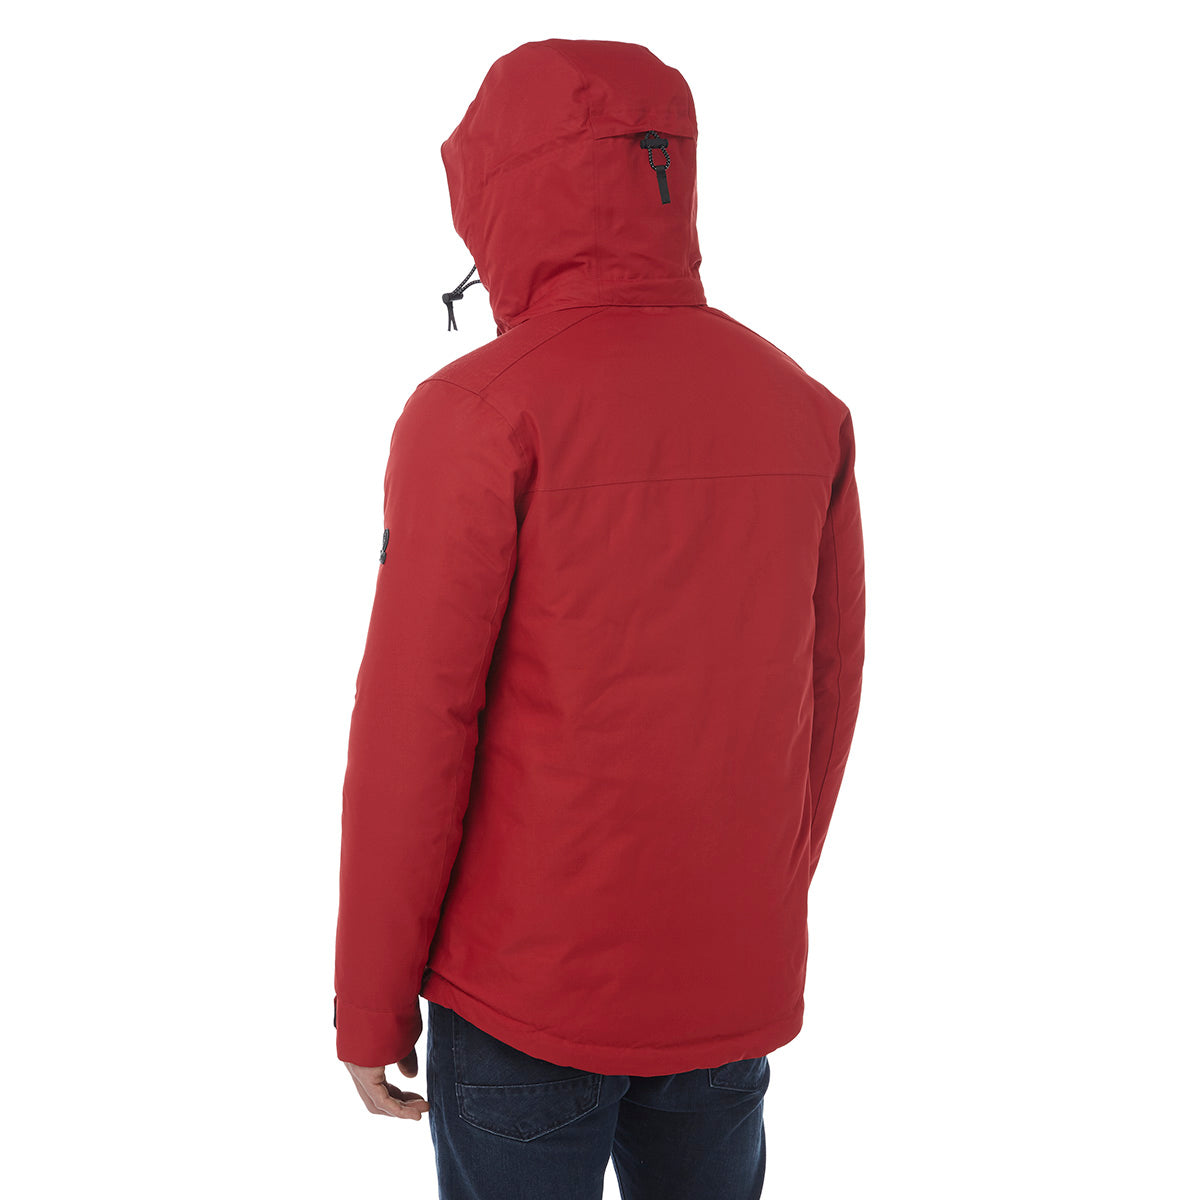 Rogan Mens Waterproof Insulated Jacket - Chilli Red image 4